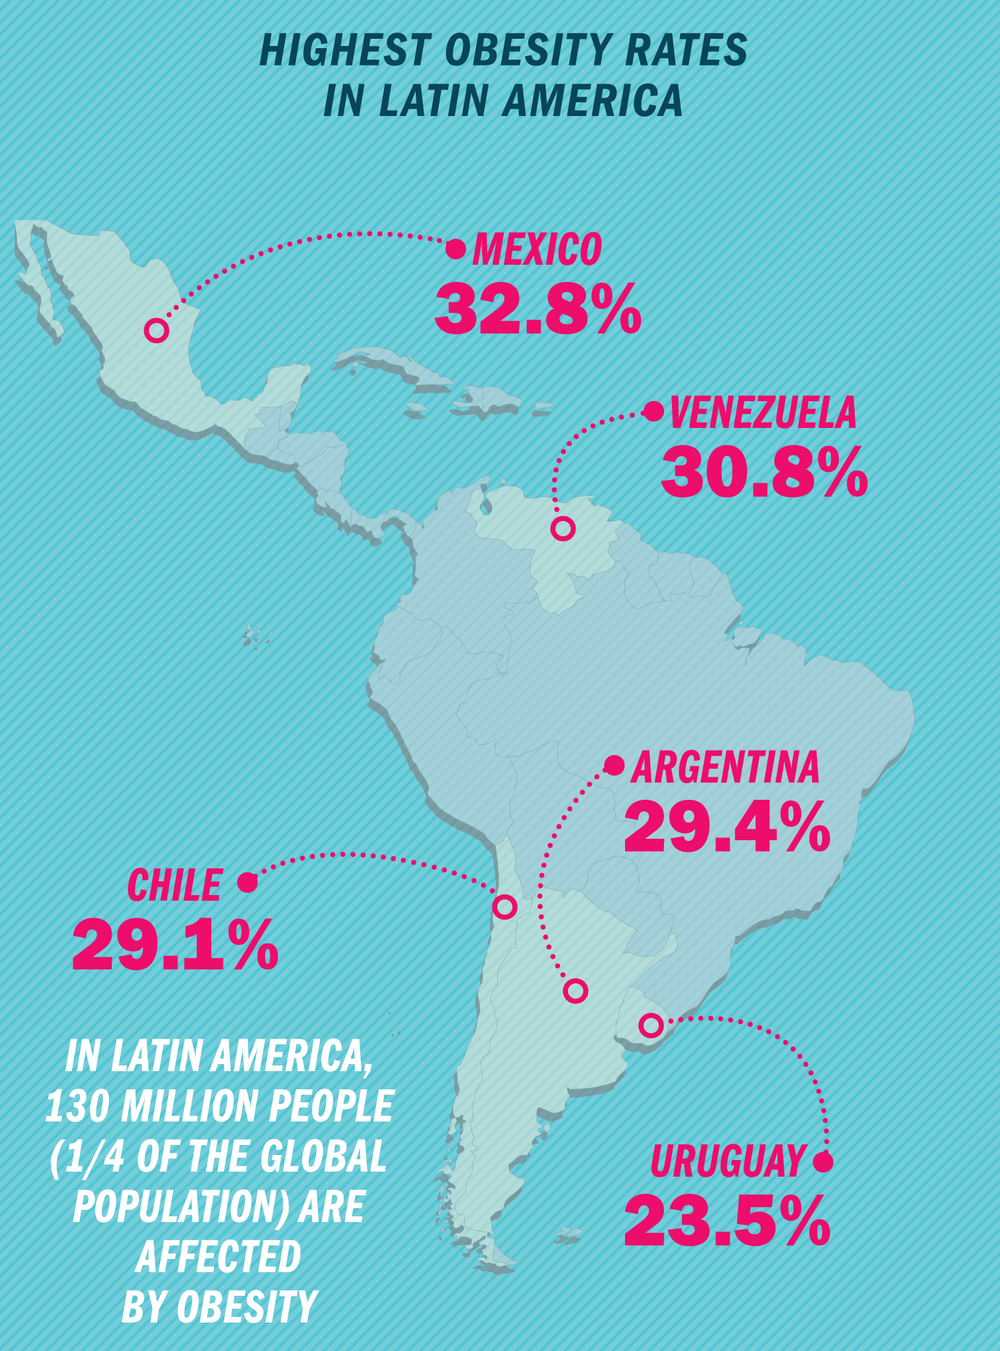 In Latin America, 130 million people (1/4 of the global population) are affected  by obesity